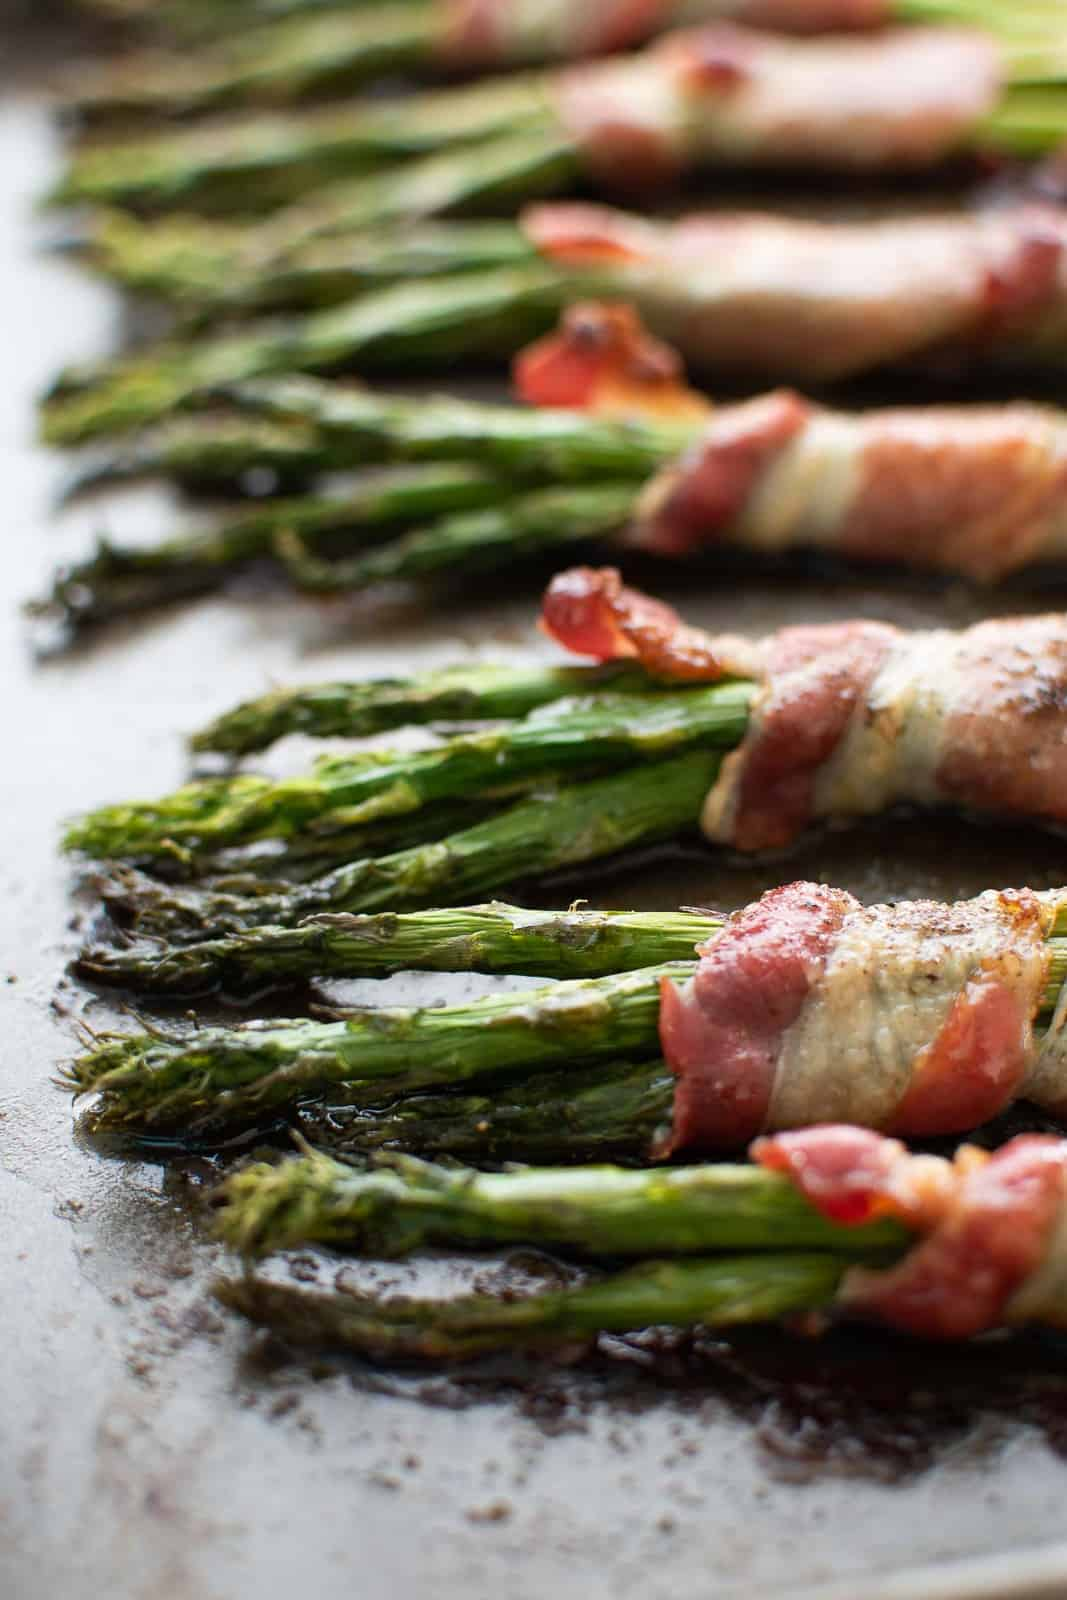 Roasted asparagus wrapped in bacon.